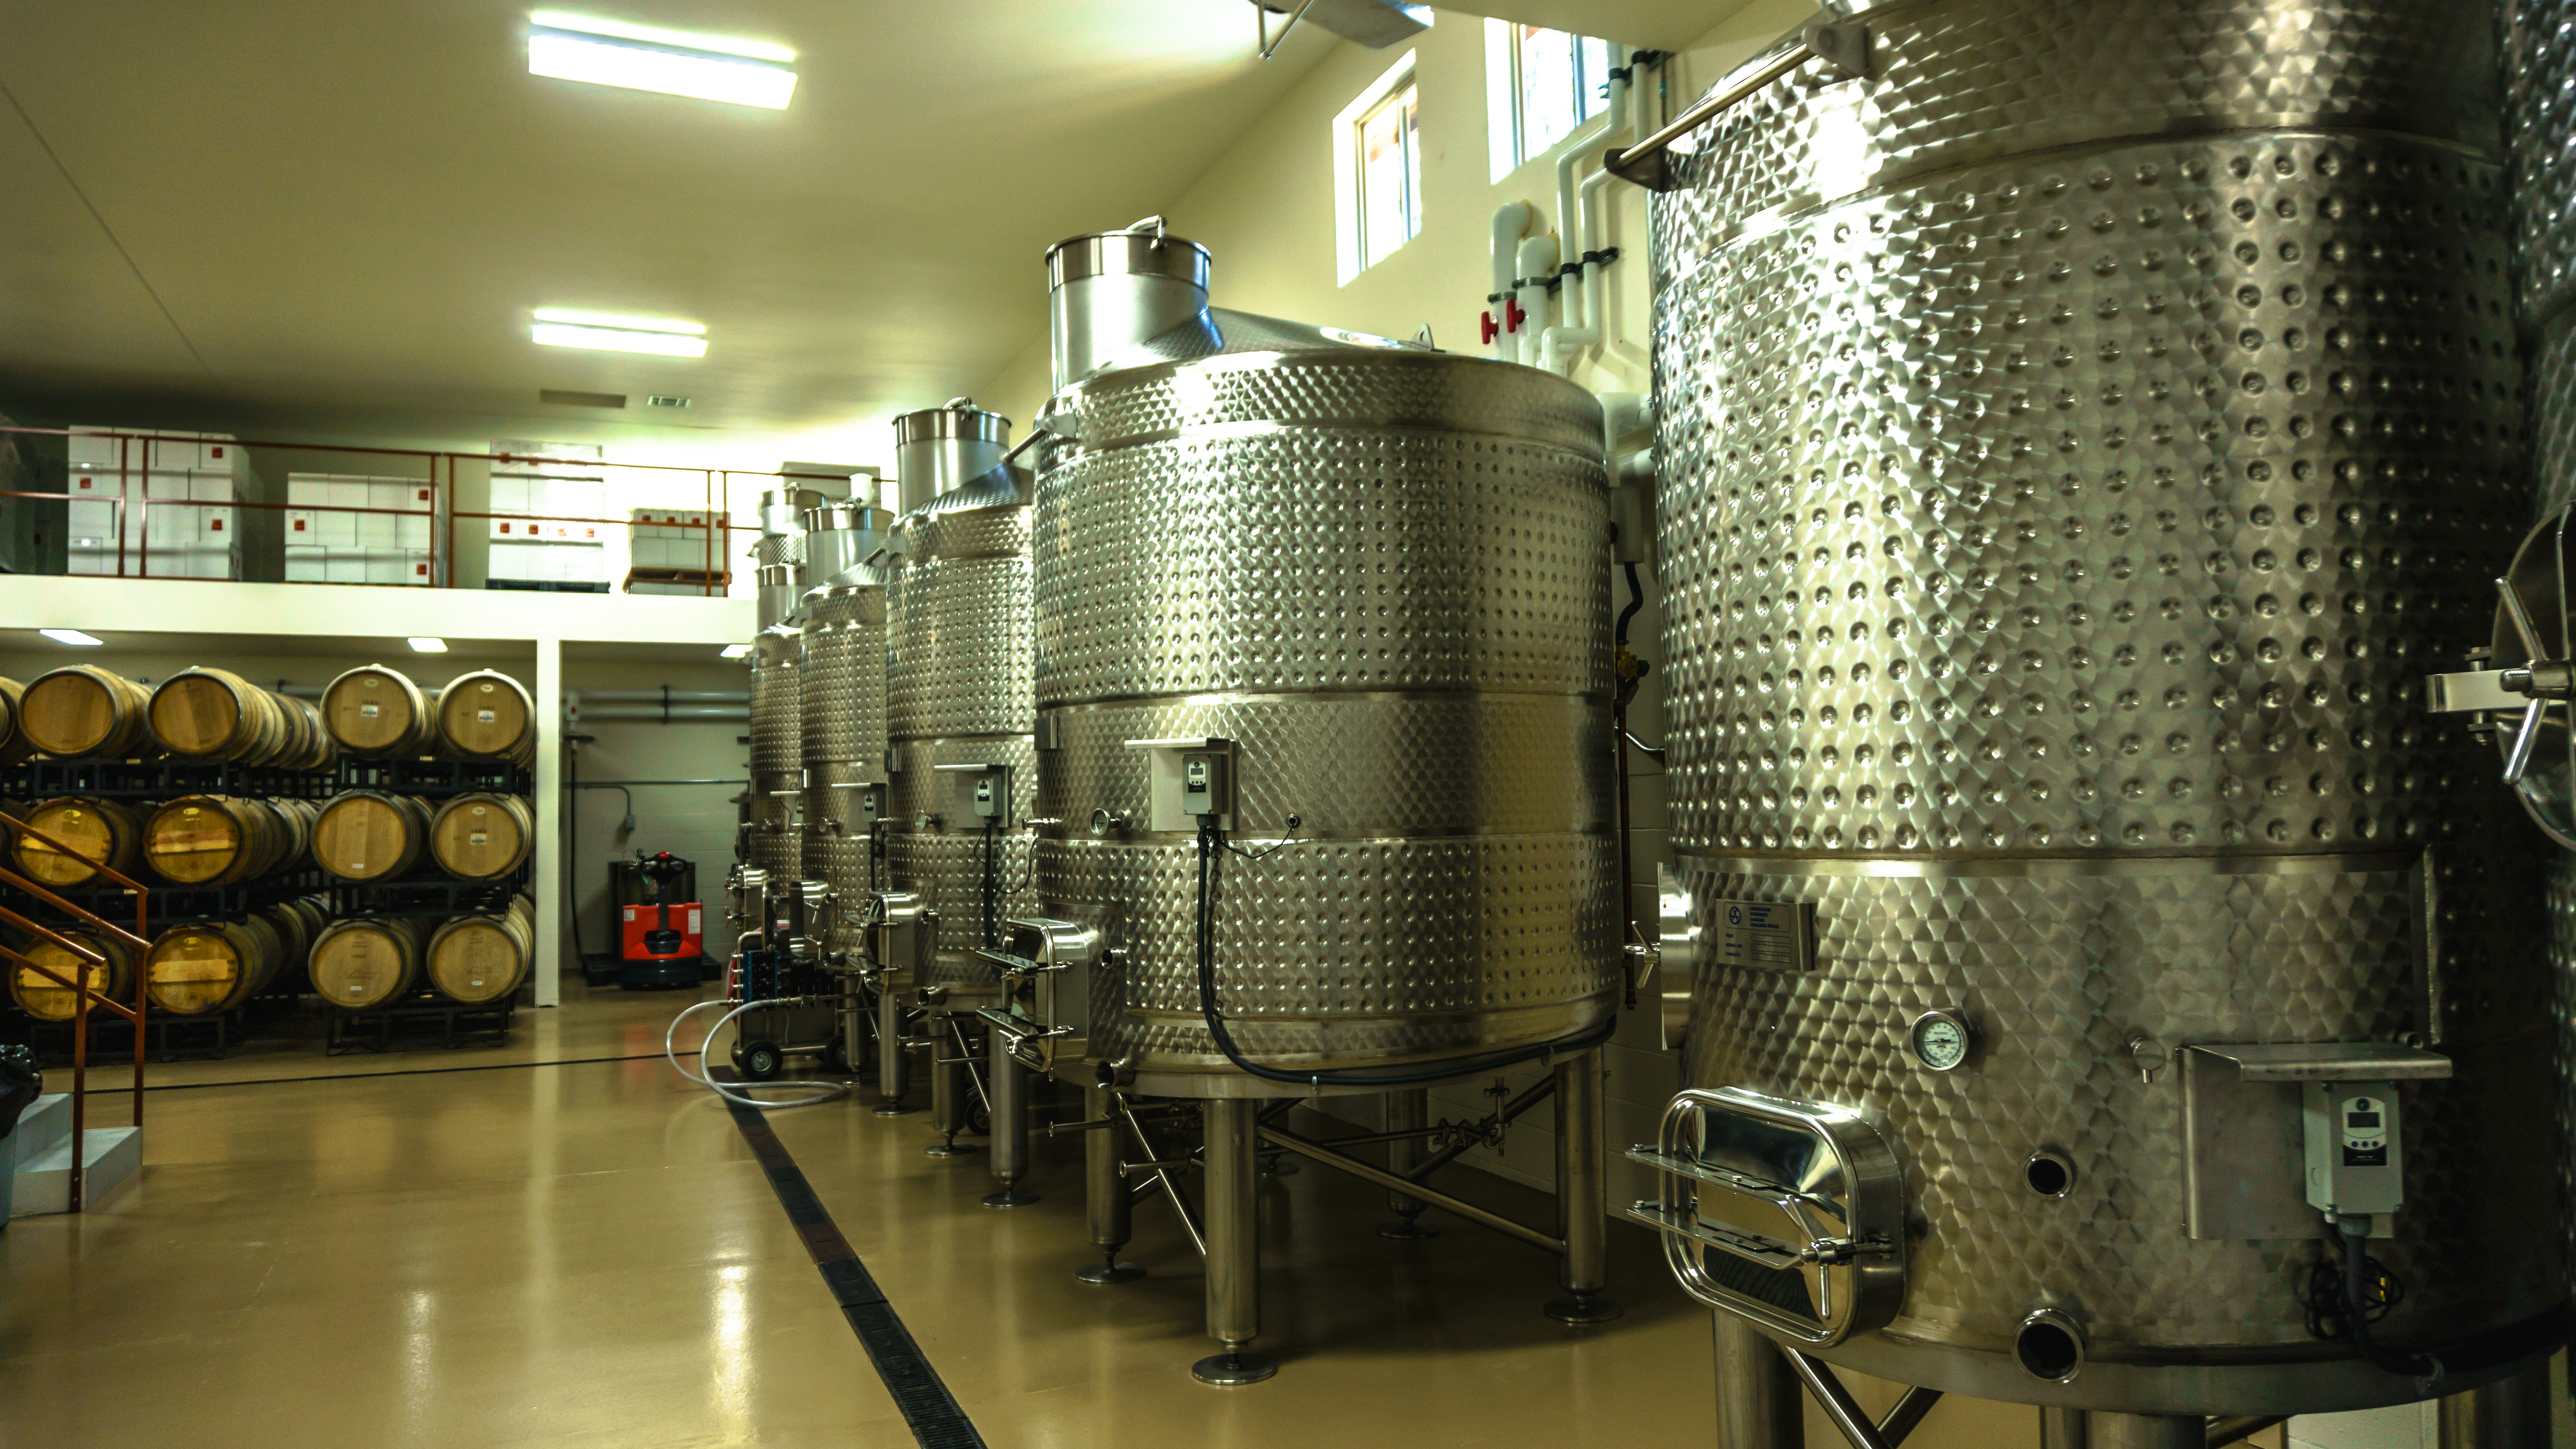 Steel wine tanks in winery